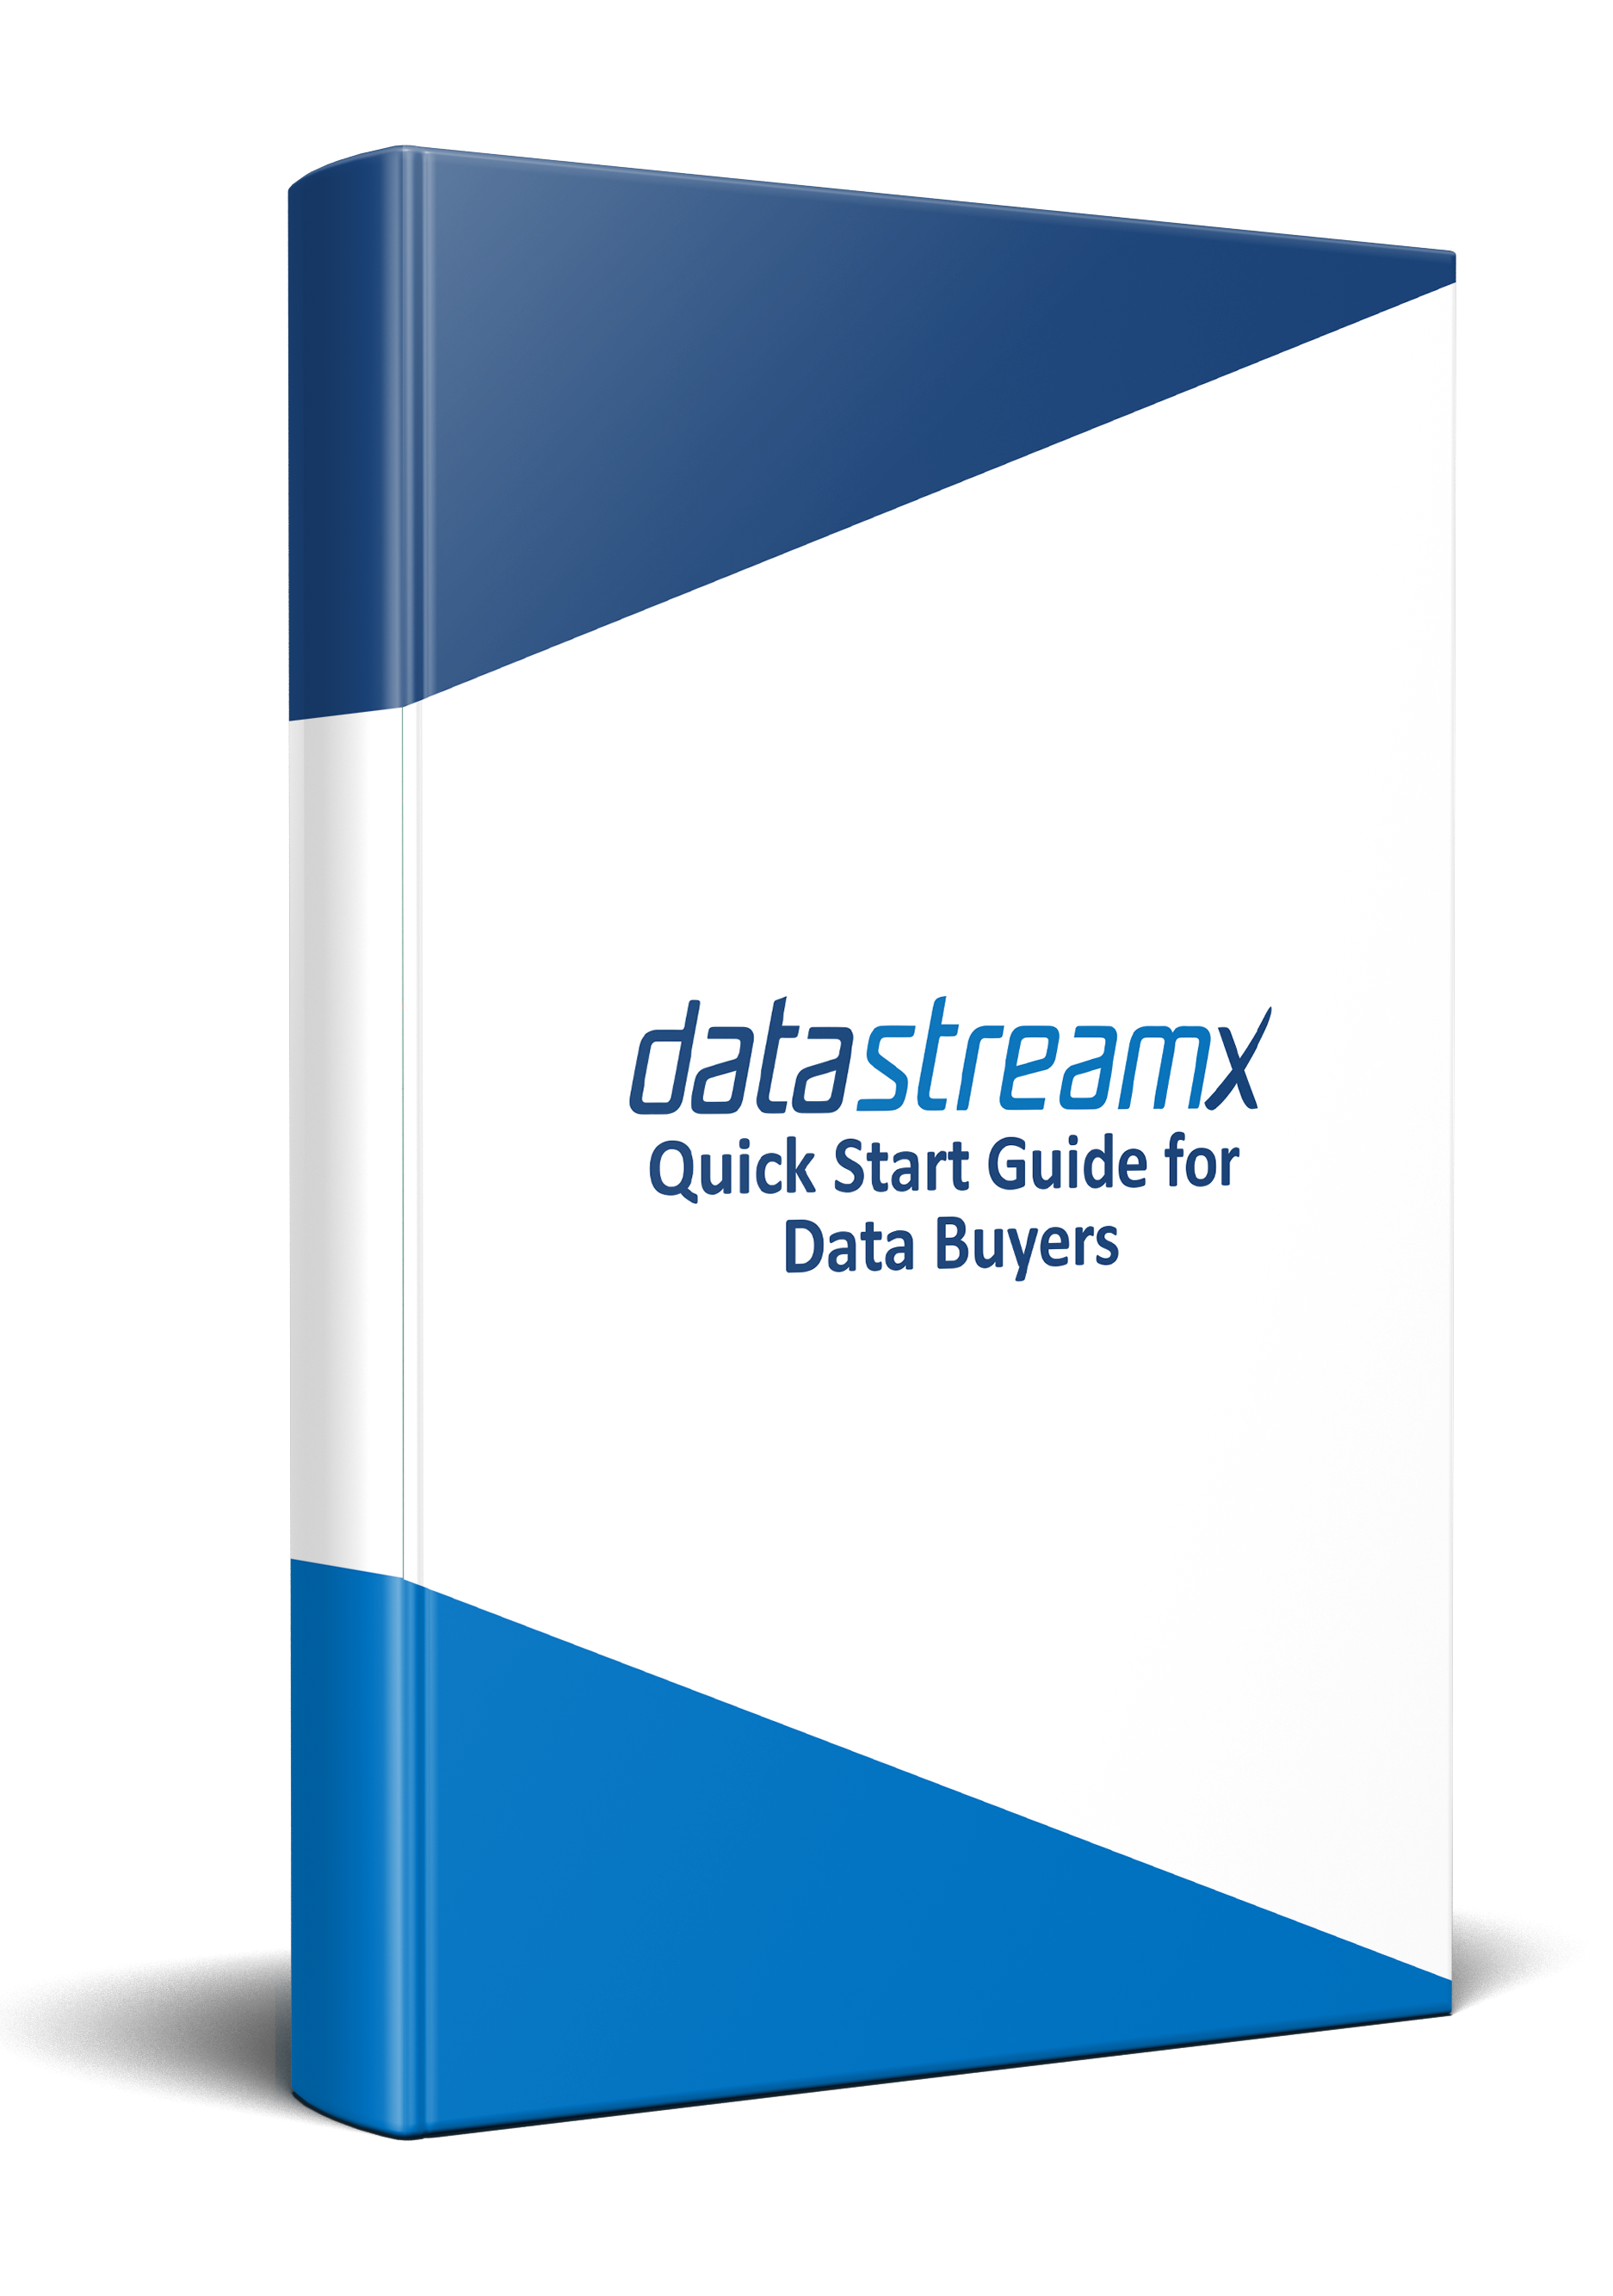 Quick Start Guide for Data Buyers